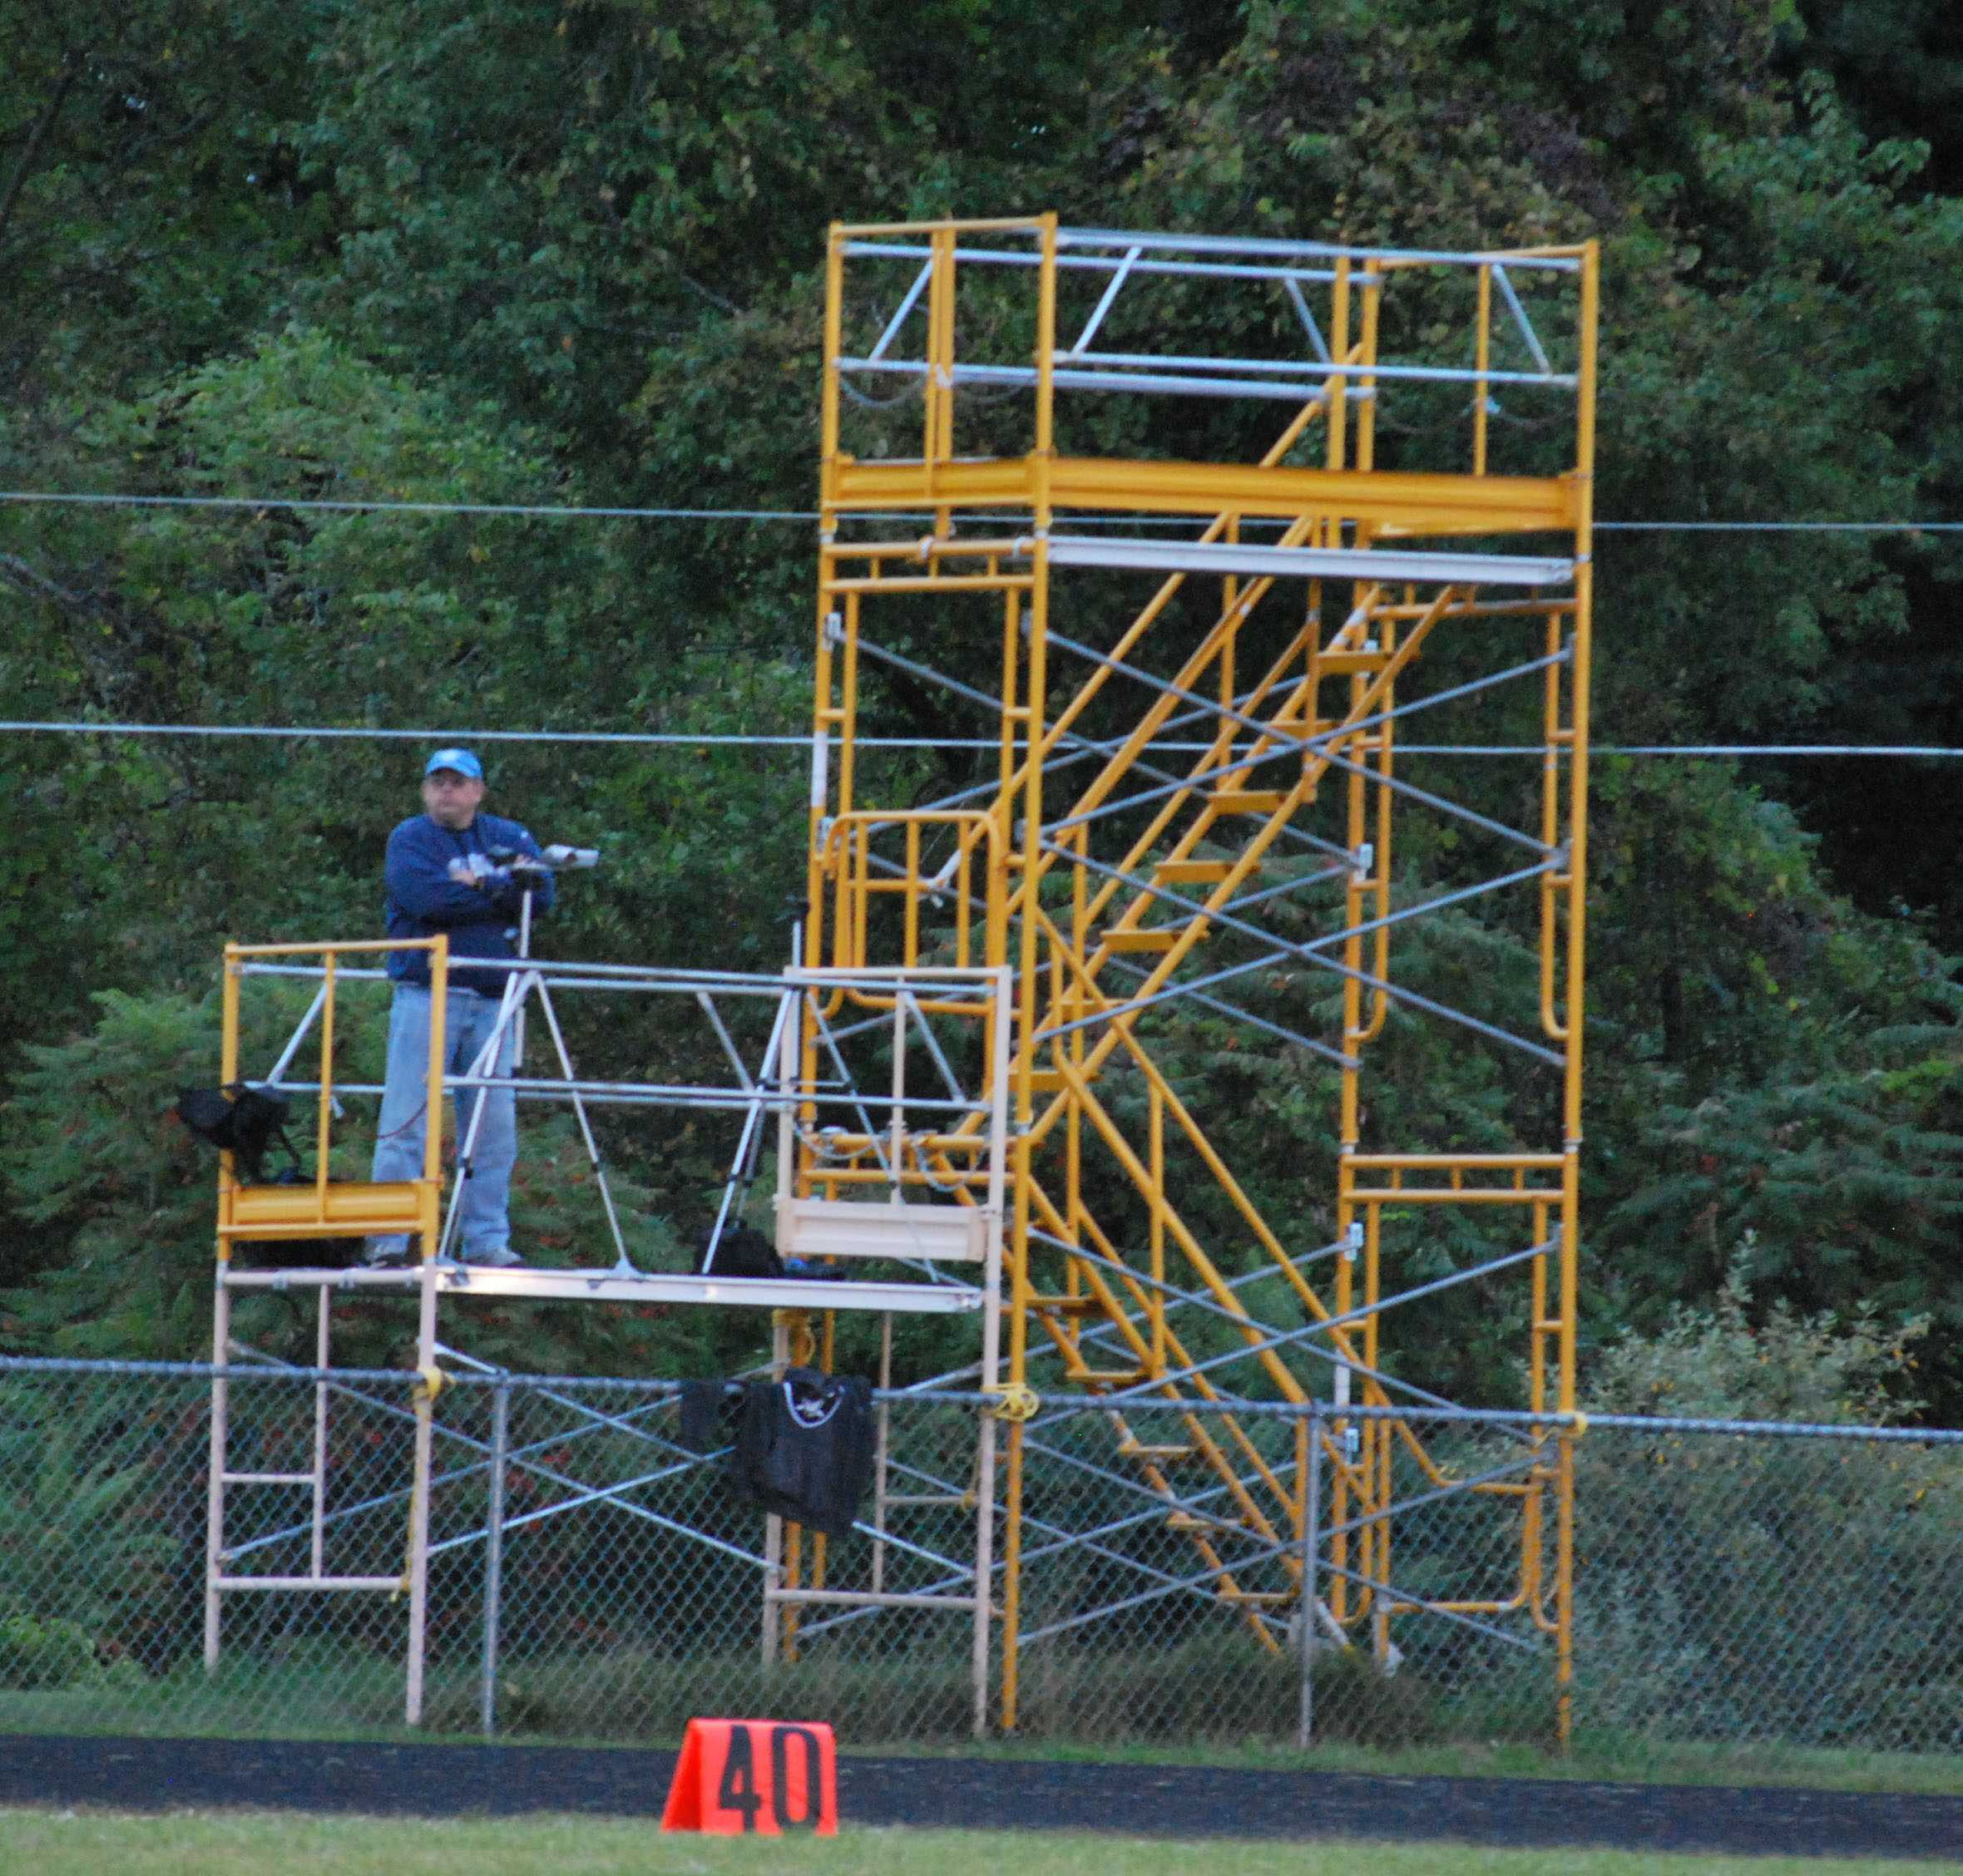 The scaffolding used for filiming and the teams' coaches at Coach Korcoulis Field Photo Credit: Austin Bumpus